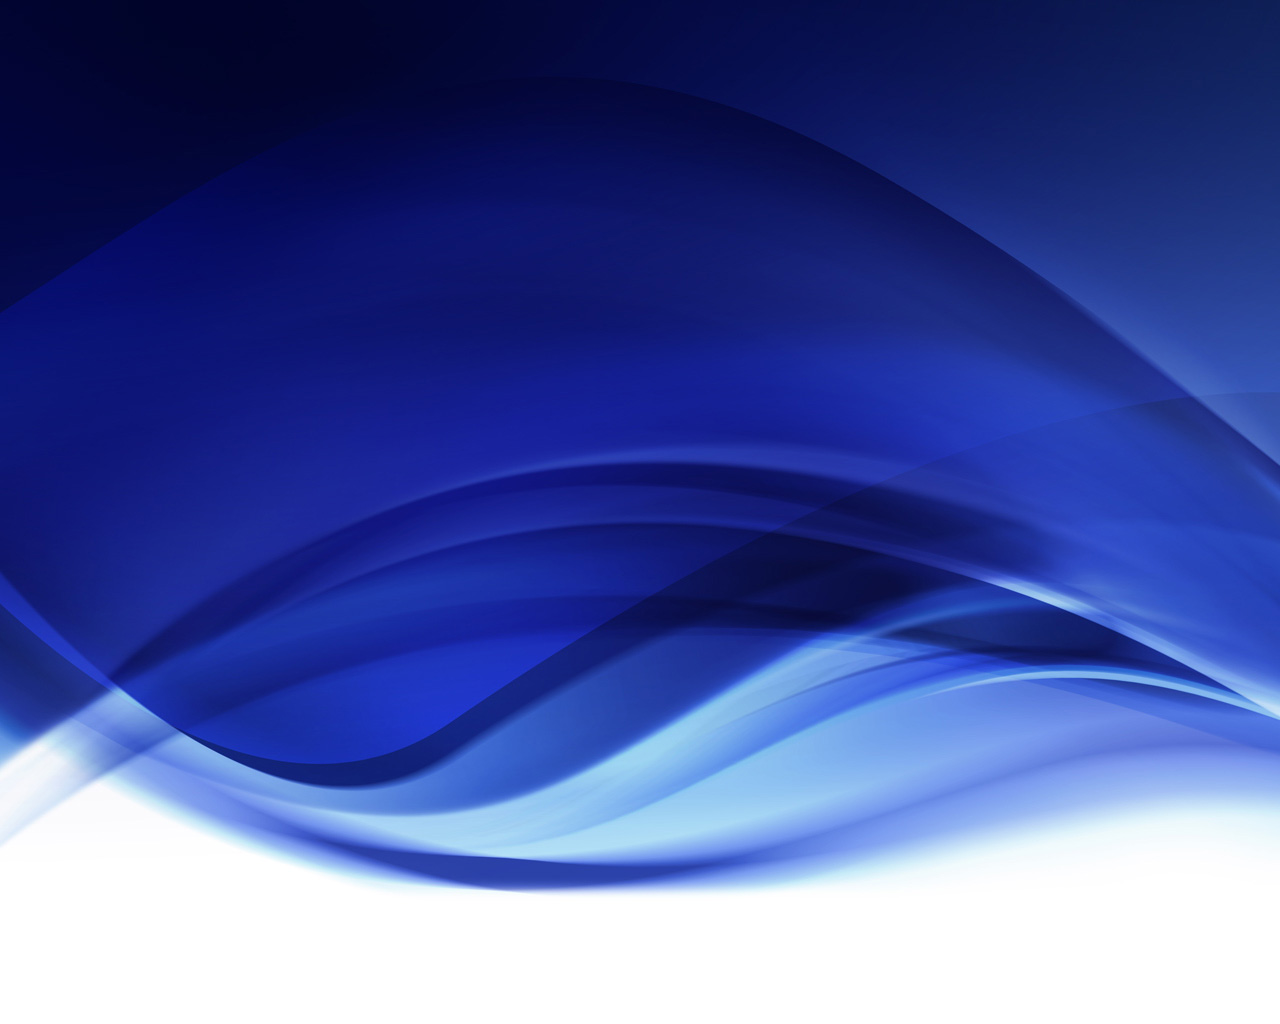 Blue Abstract Designs